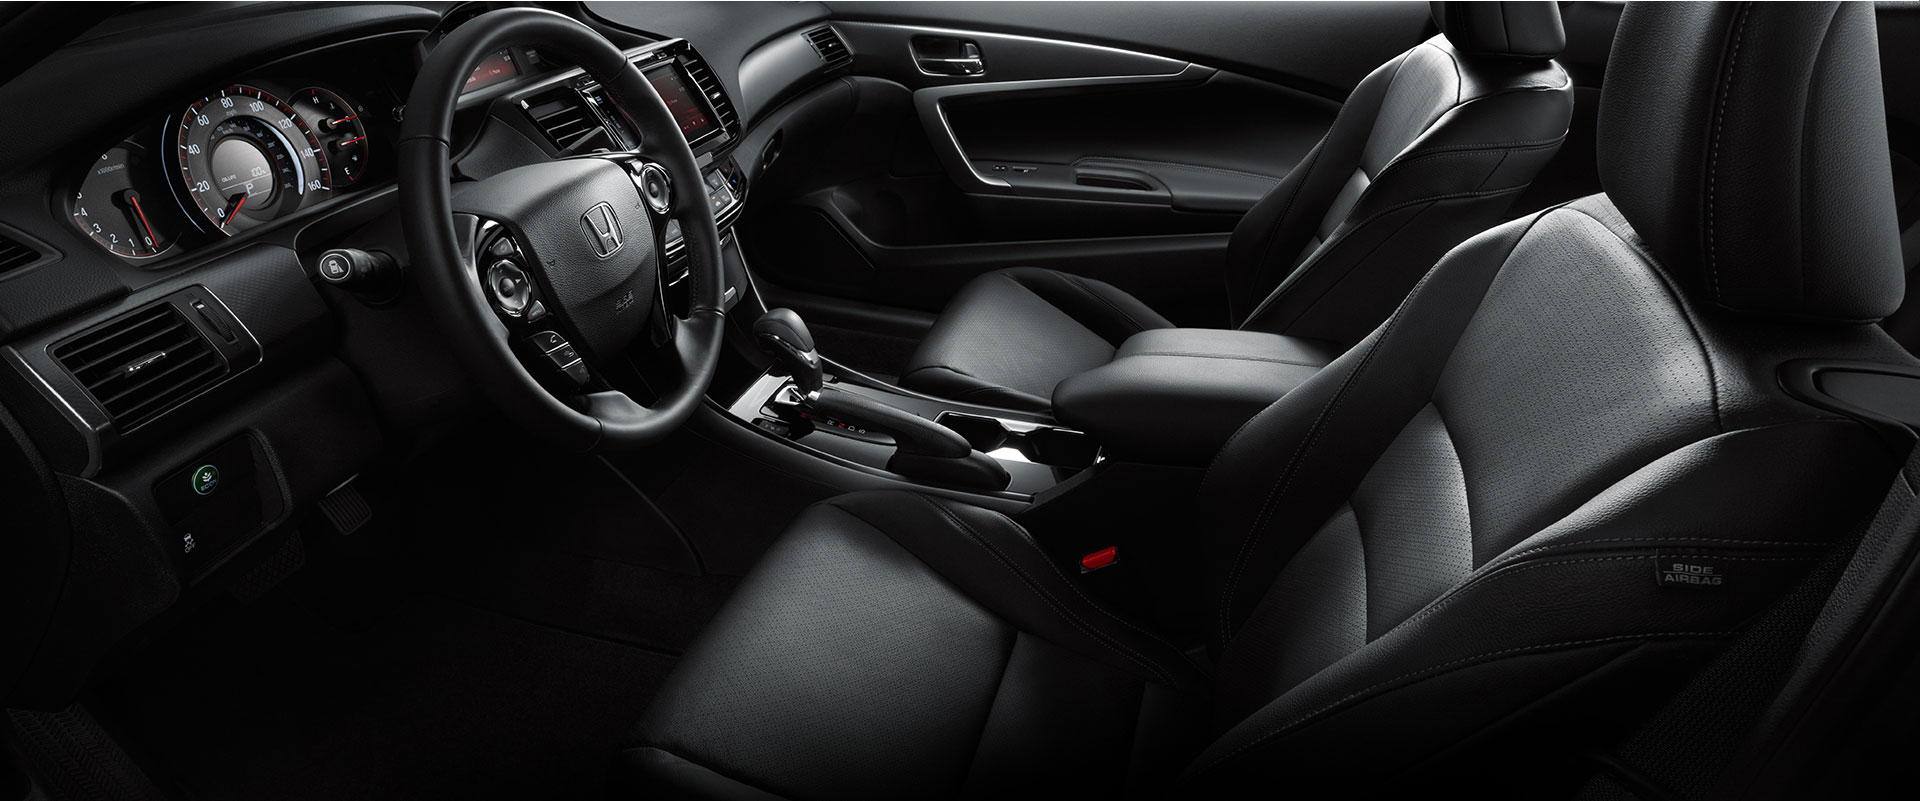 2016 honda accord coupe features details official site. Black Bedroom Furniture Sets. Home Design Ideas